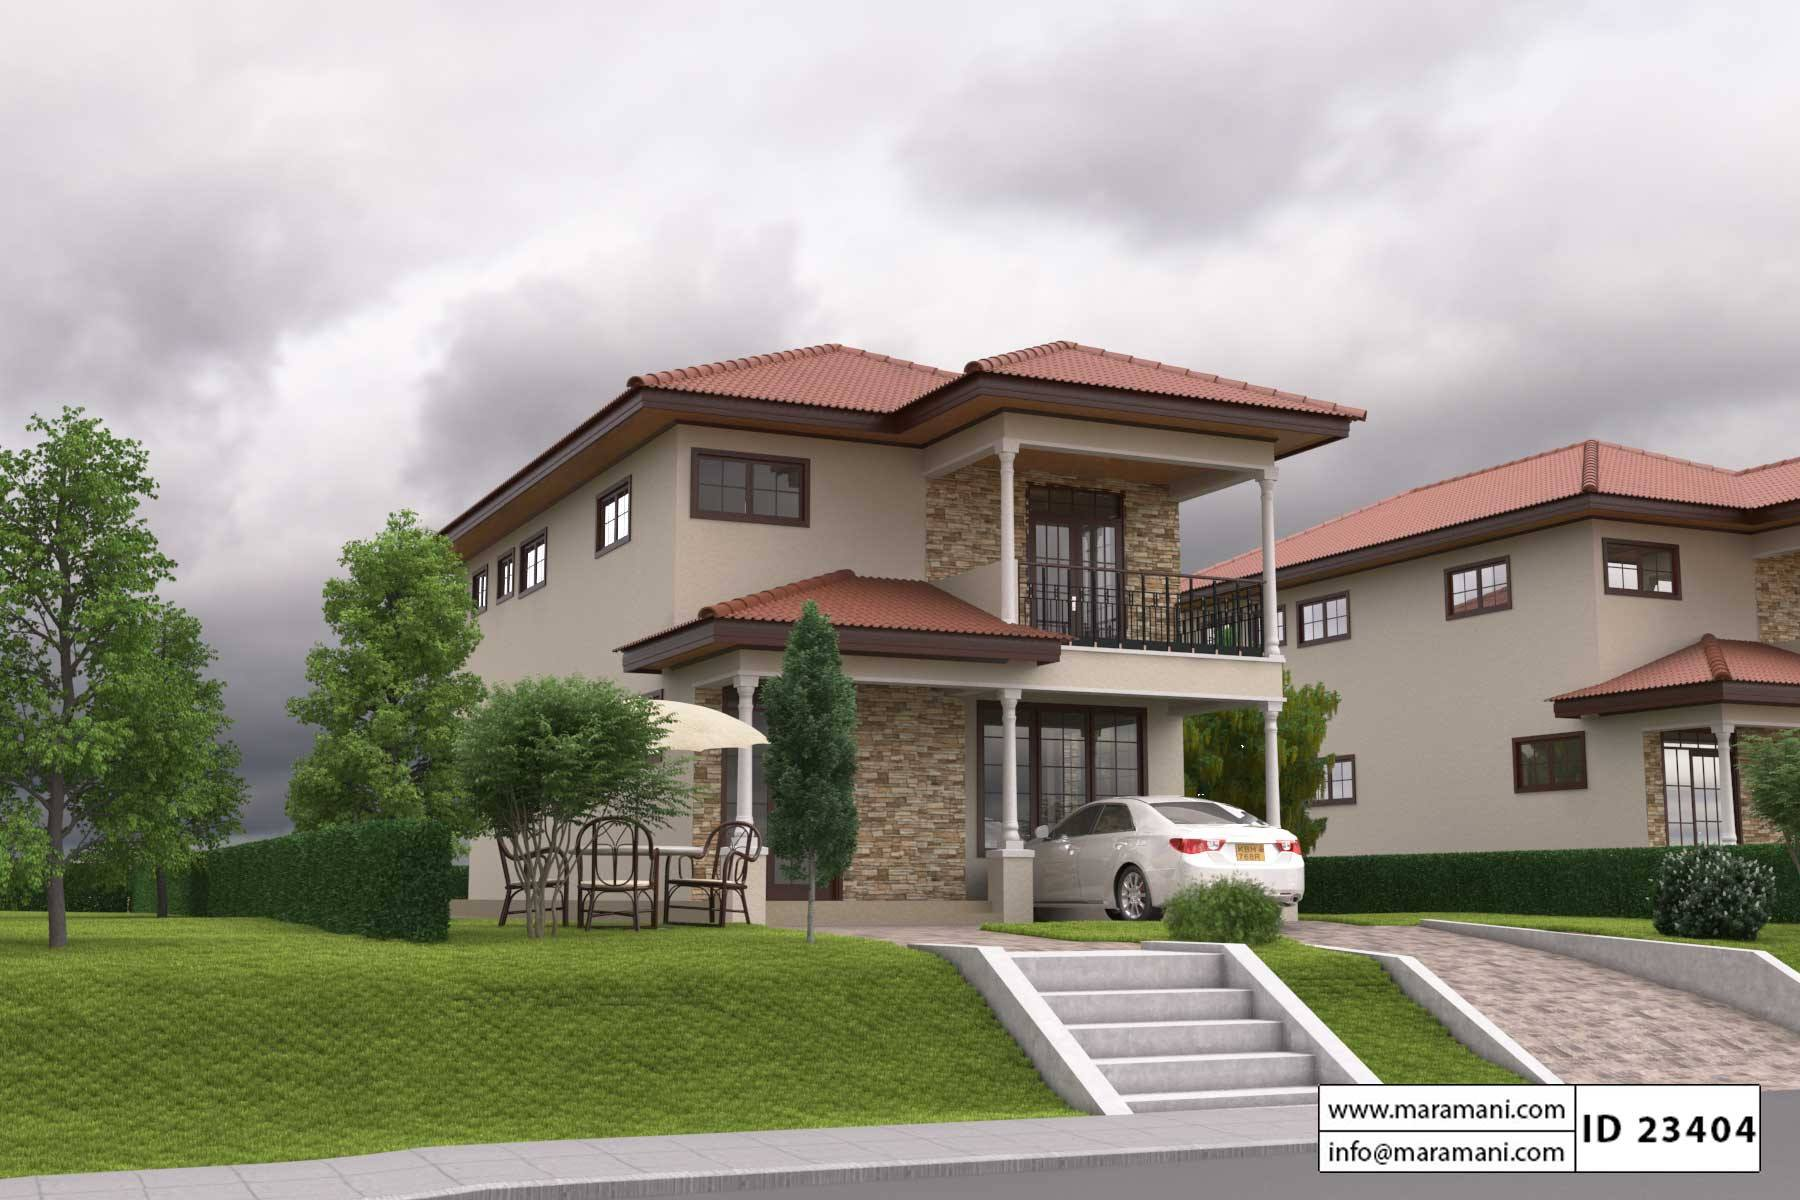 Simple Three Bedroom House Plan Id 23404 Floor Plans